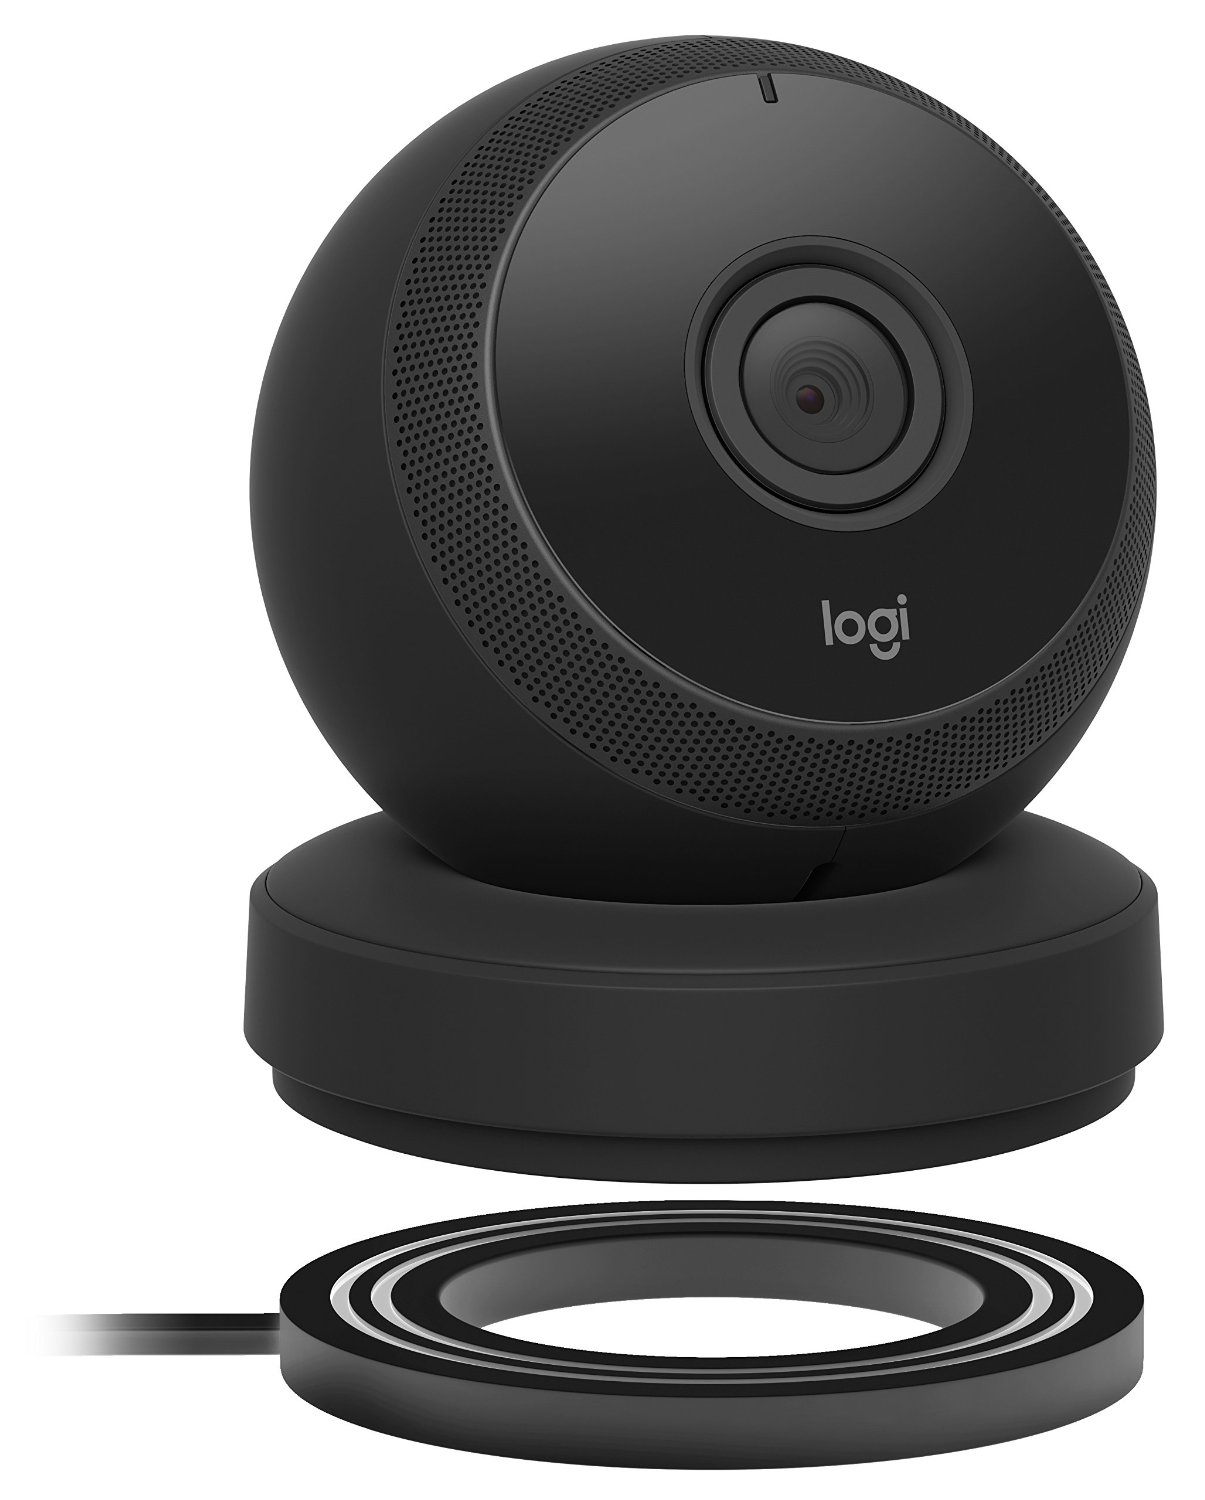 Logitech Circle Wireless 1080p Video Battery Powered Security Camera with Person Detection